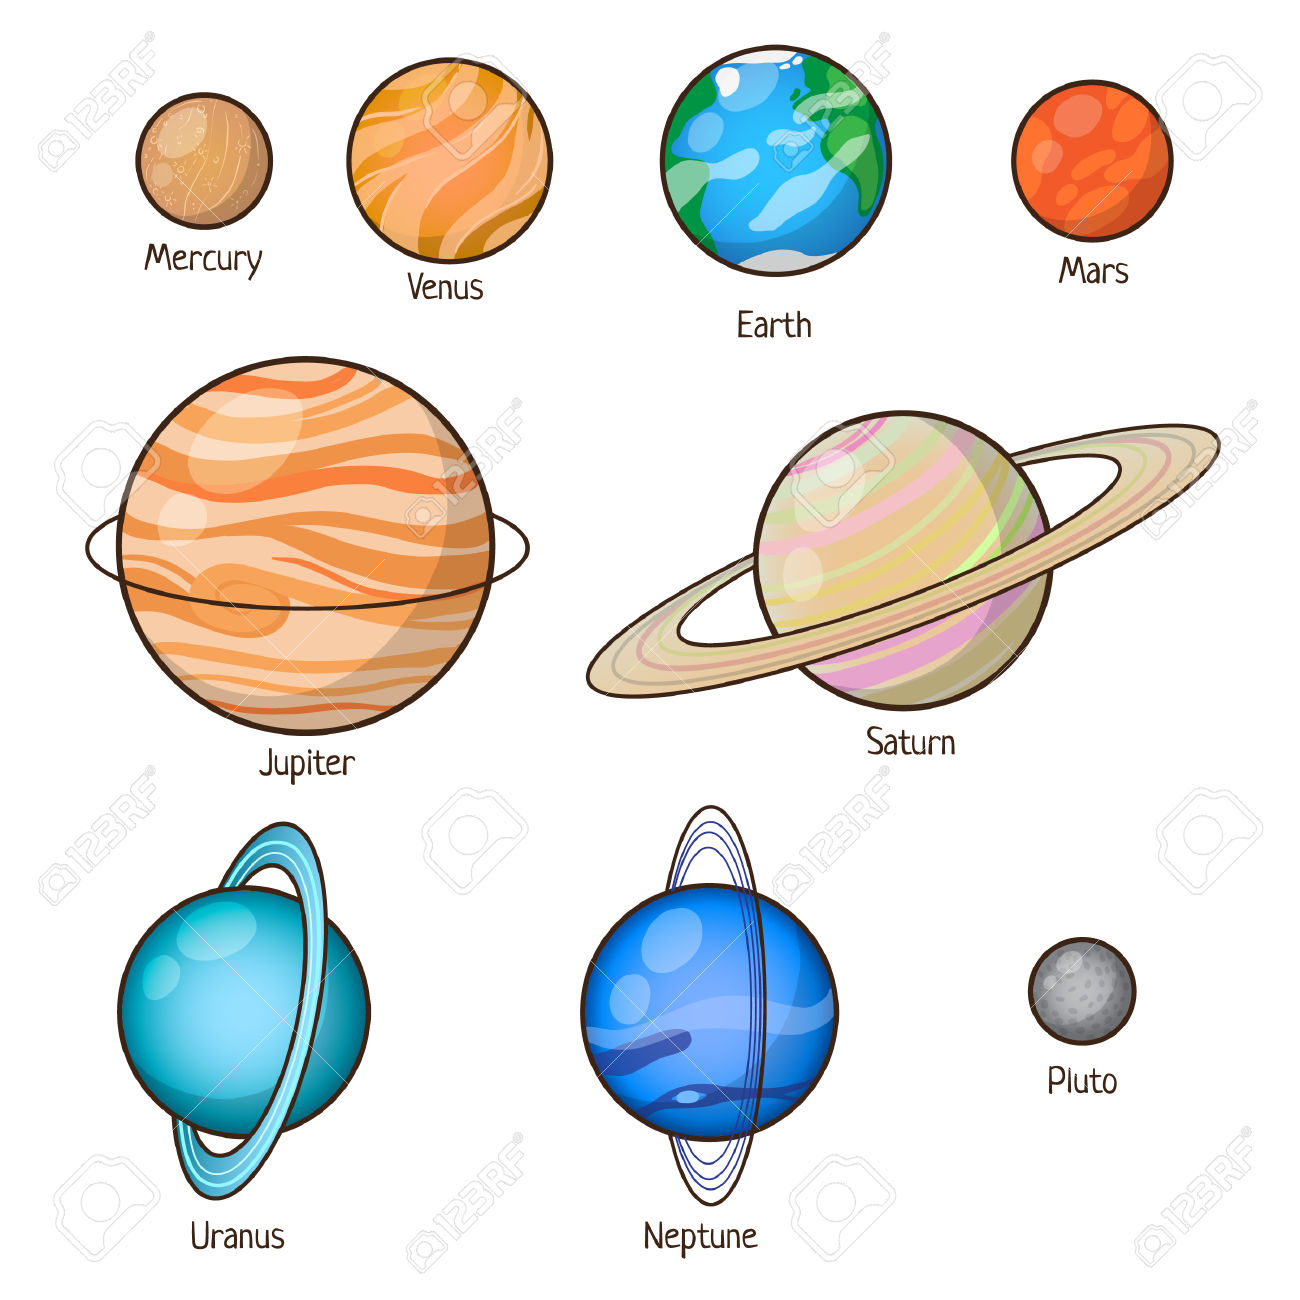 Inner Planets Clipart 20 Free Cliparts